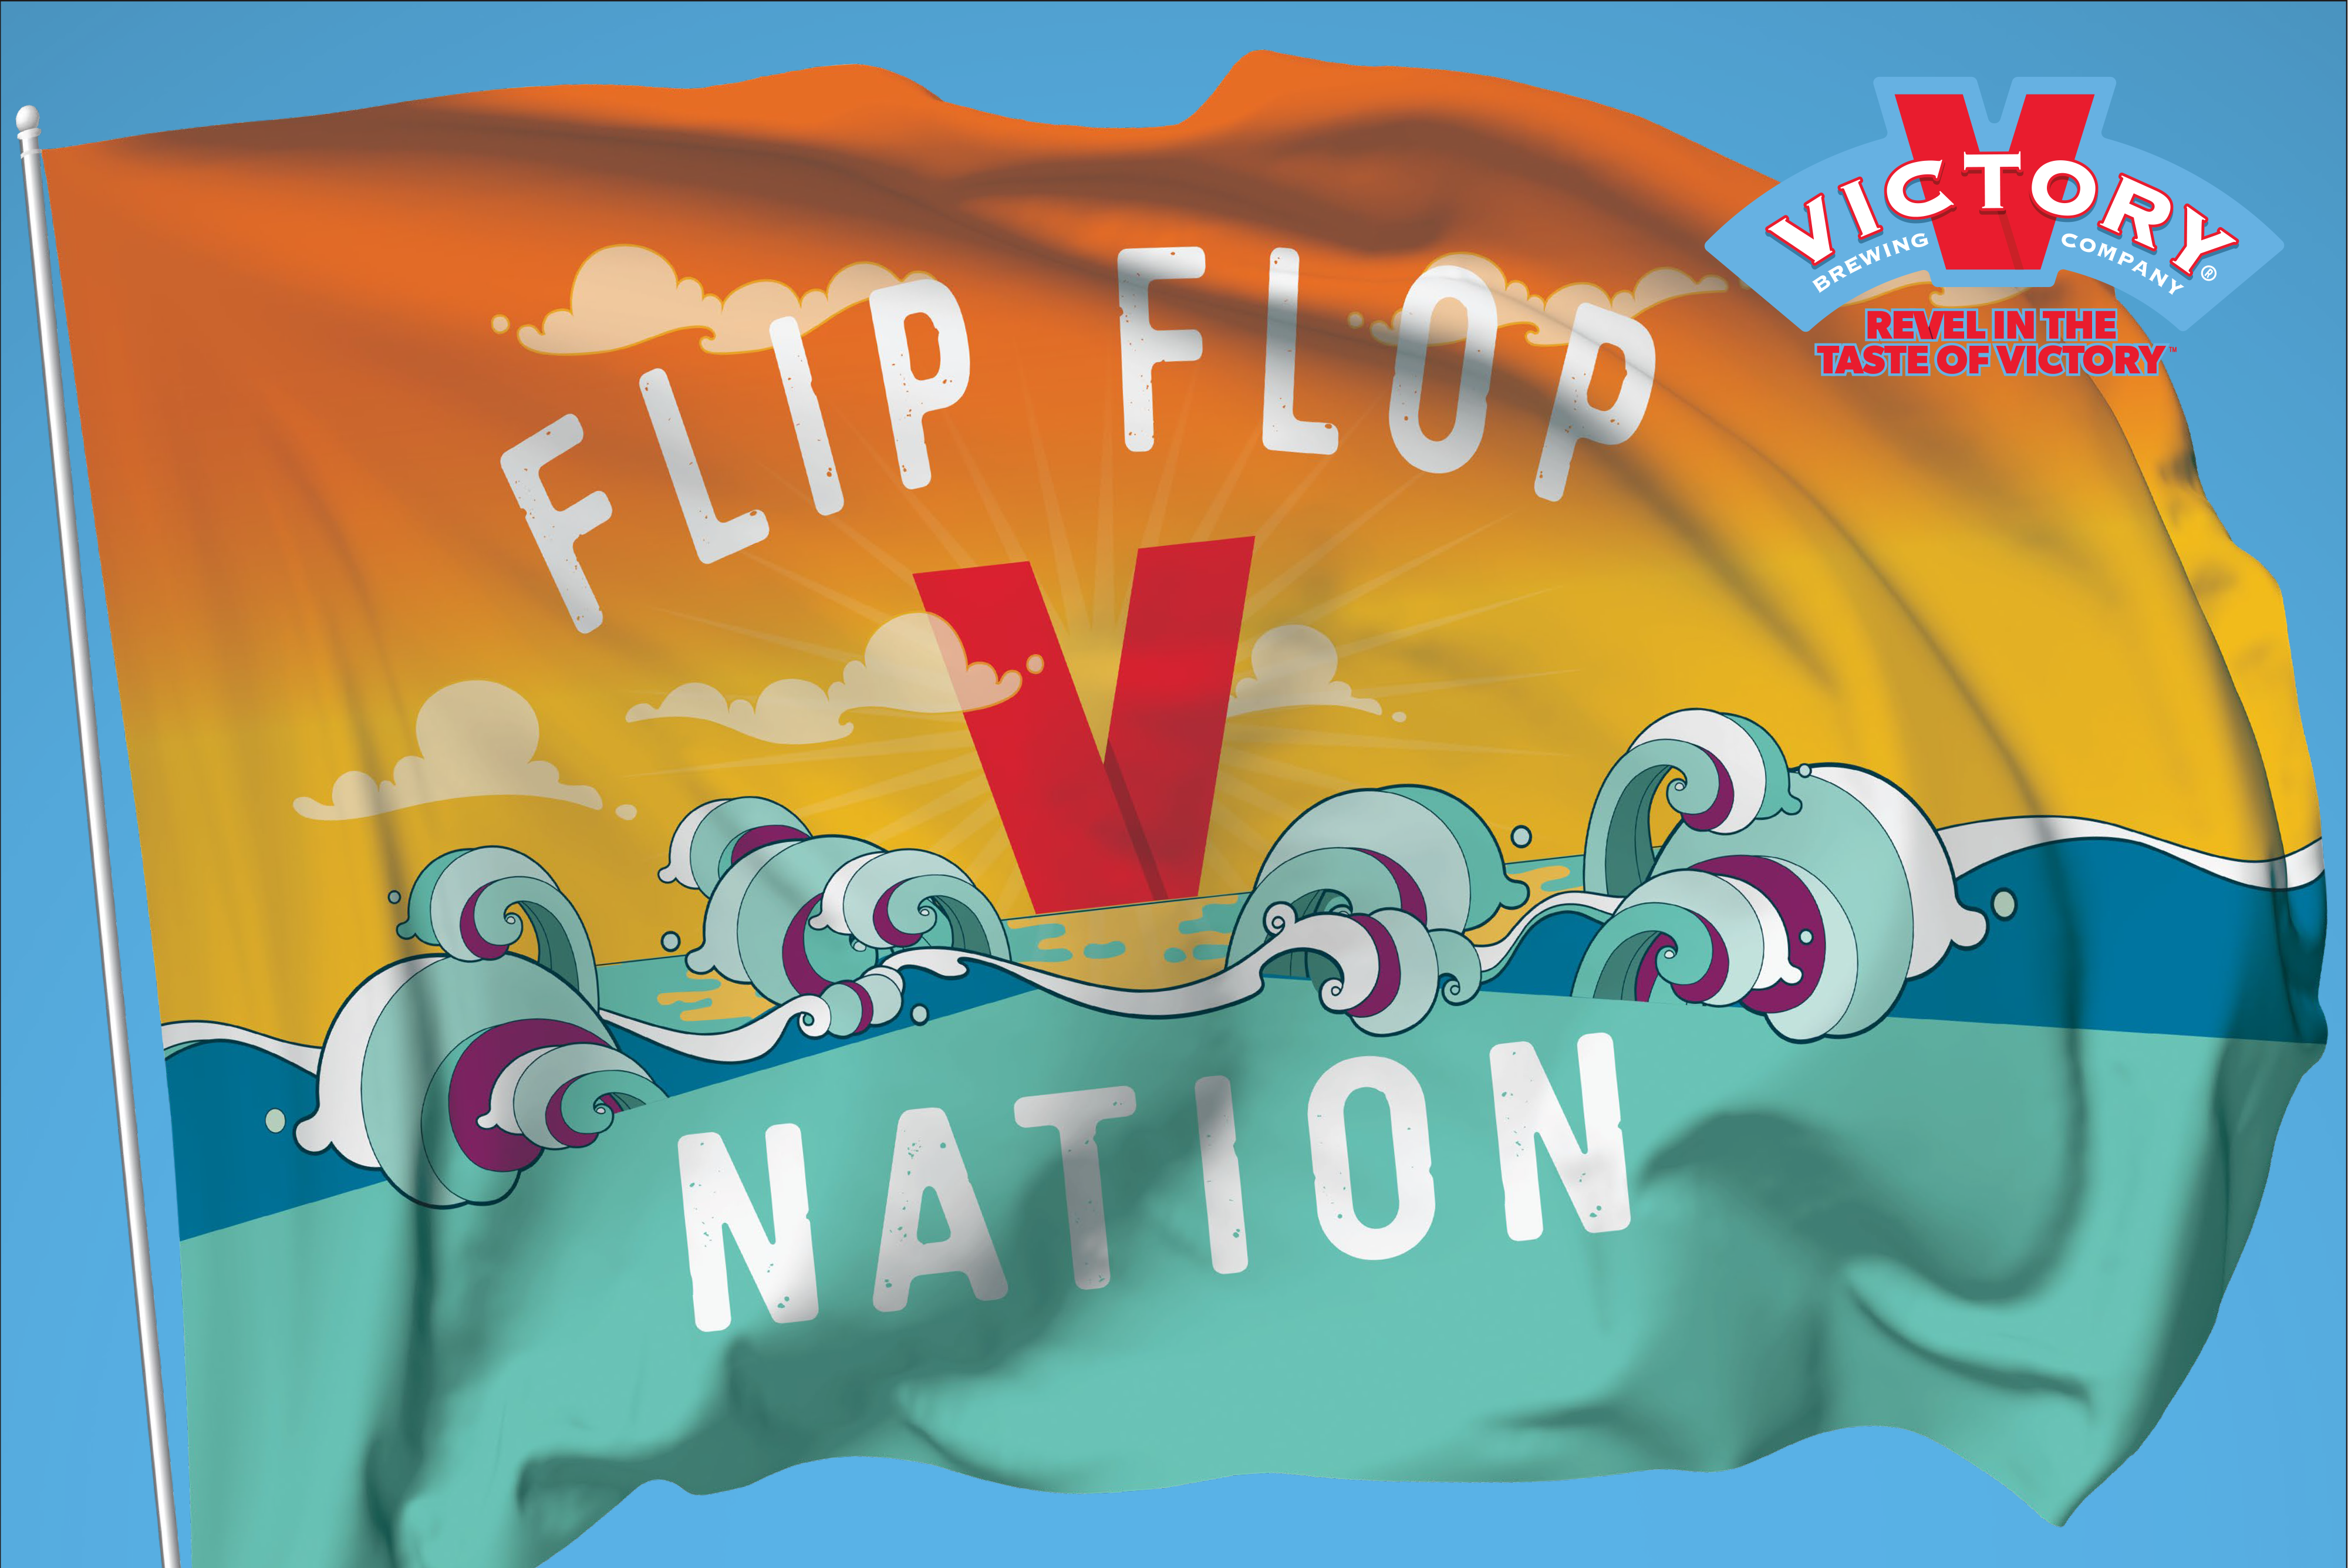 Victory Brewing Company - Flip Flop Nation